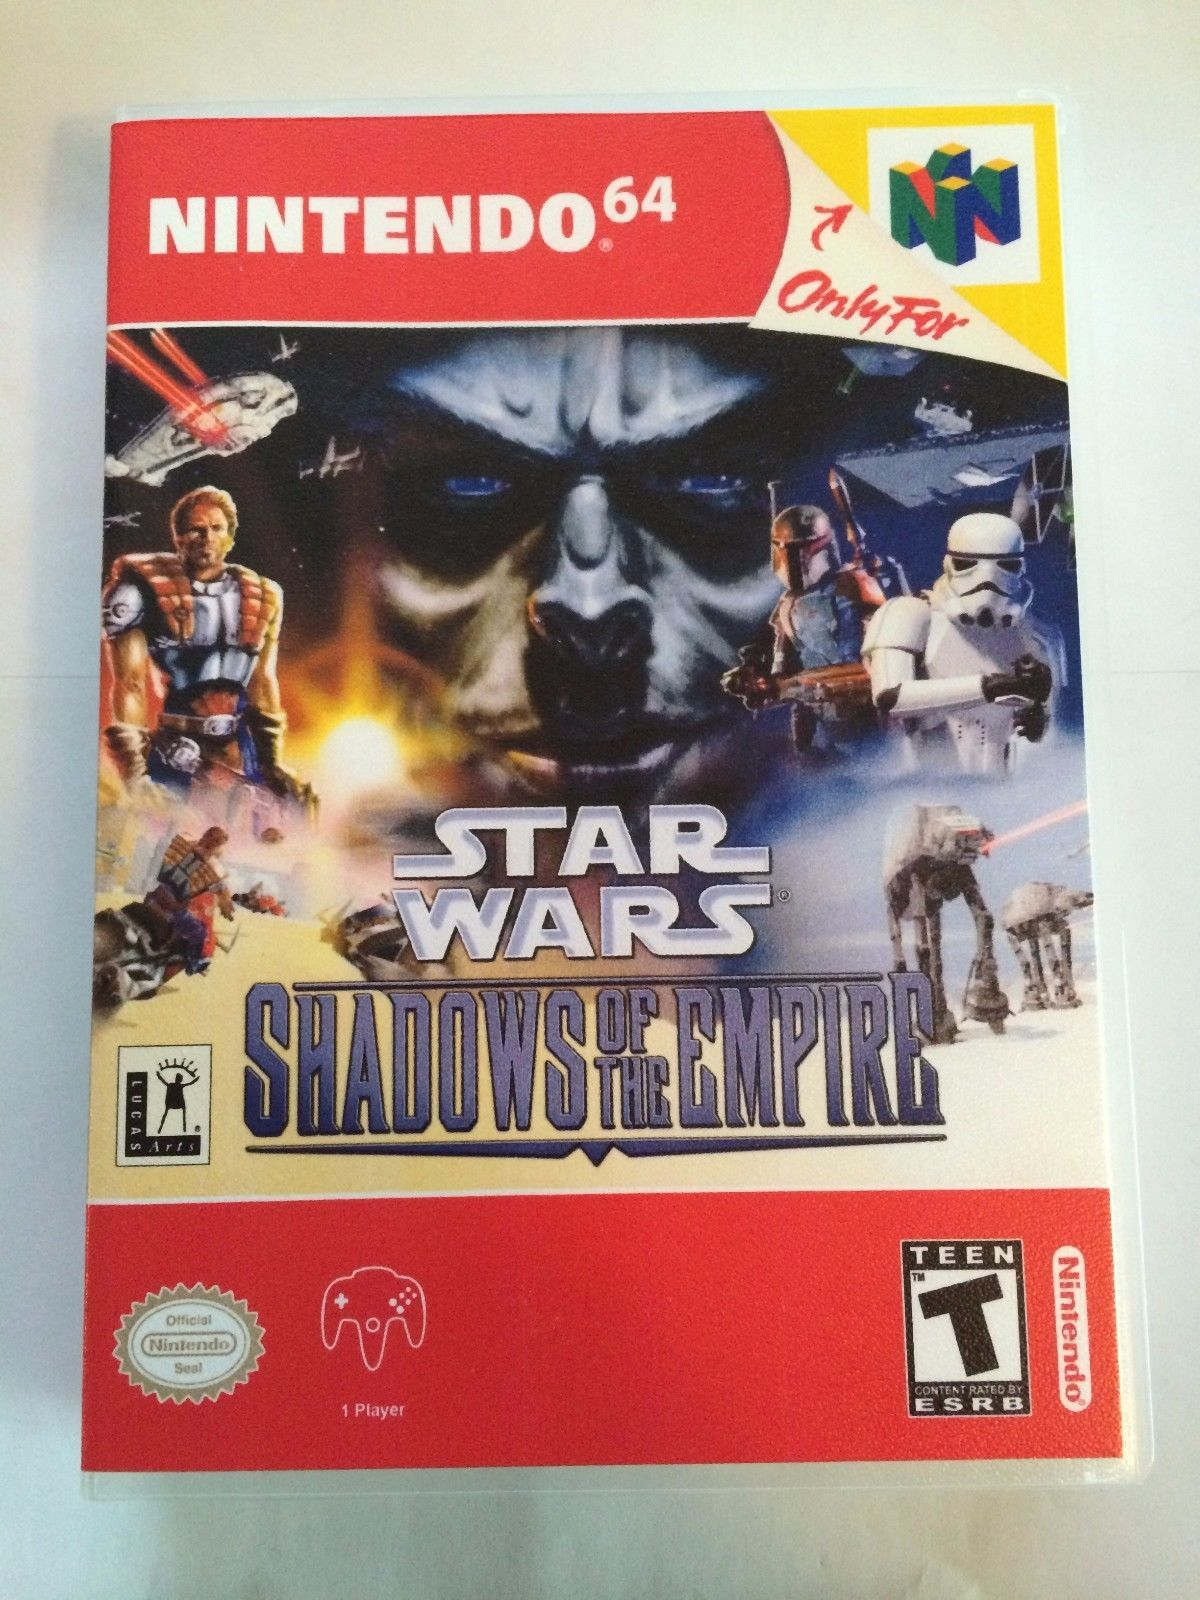 Star Wars Shadows of the Empire - Nintendo 64 - Replacement Case - No Game